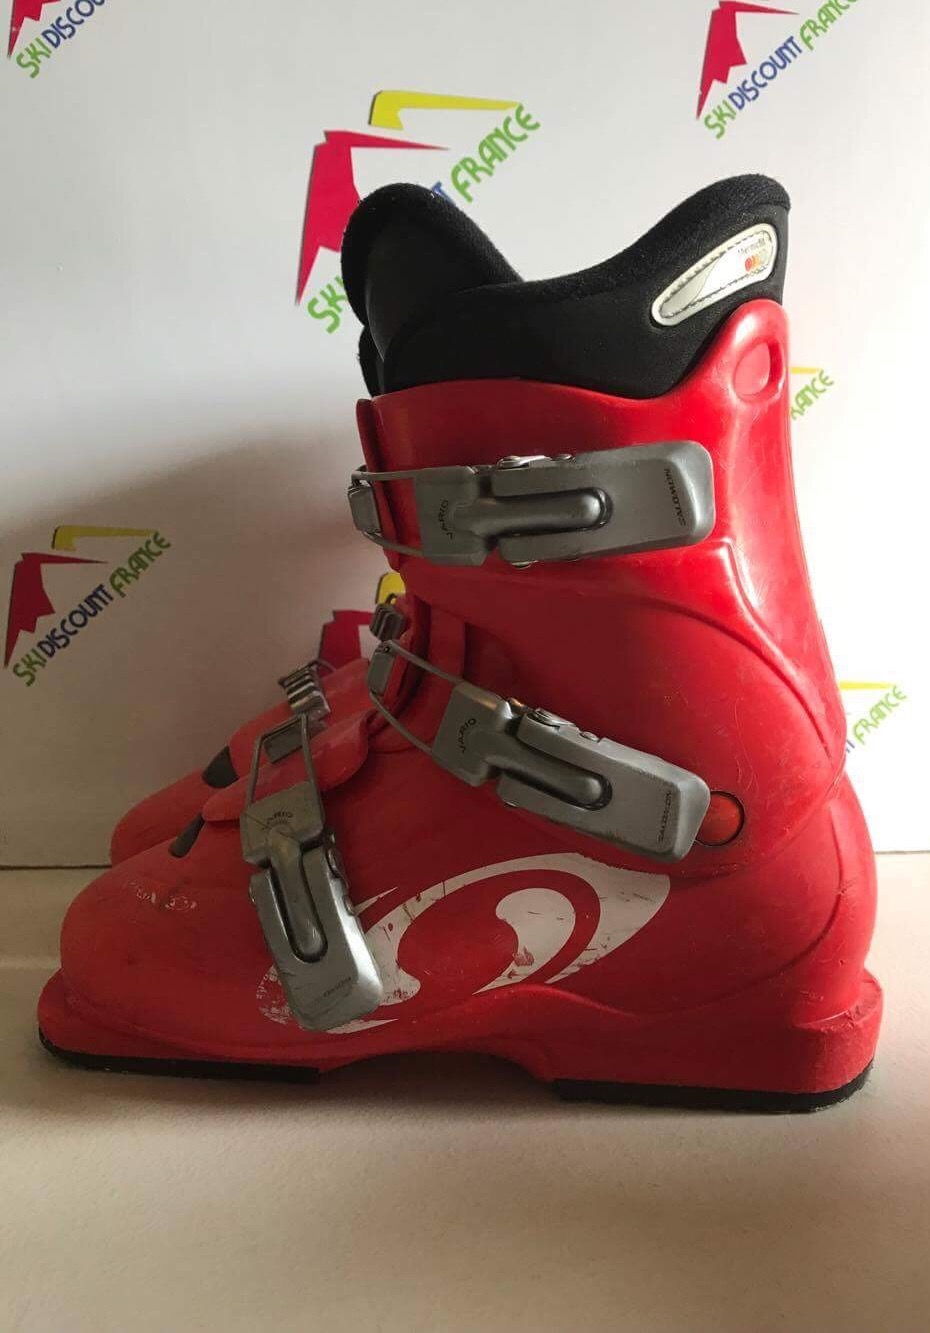 Chaussure de ski Occasion Junior Salomon Performa t3